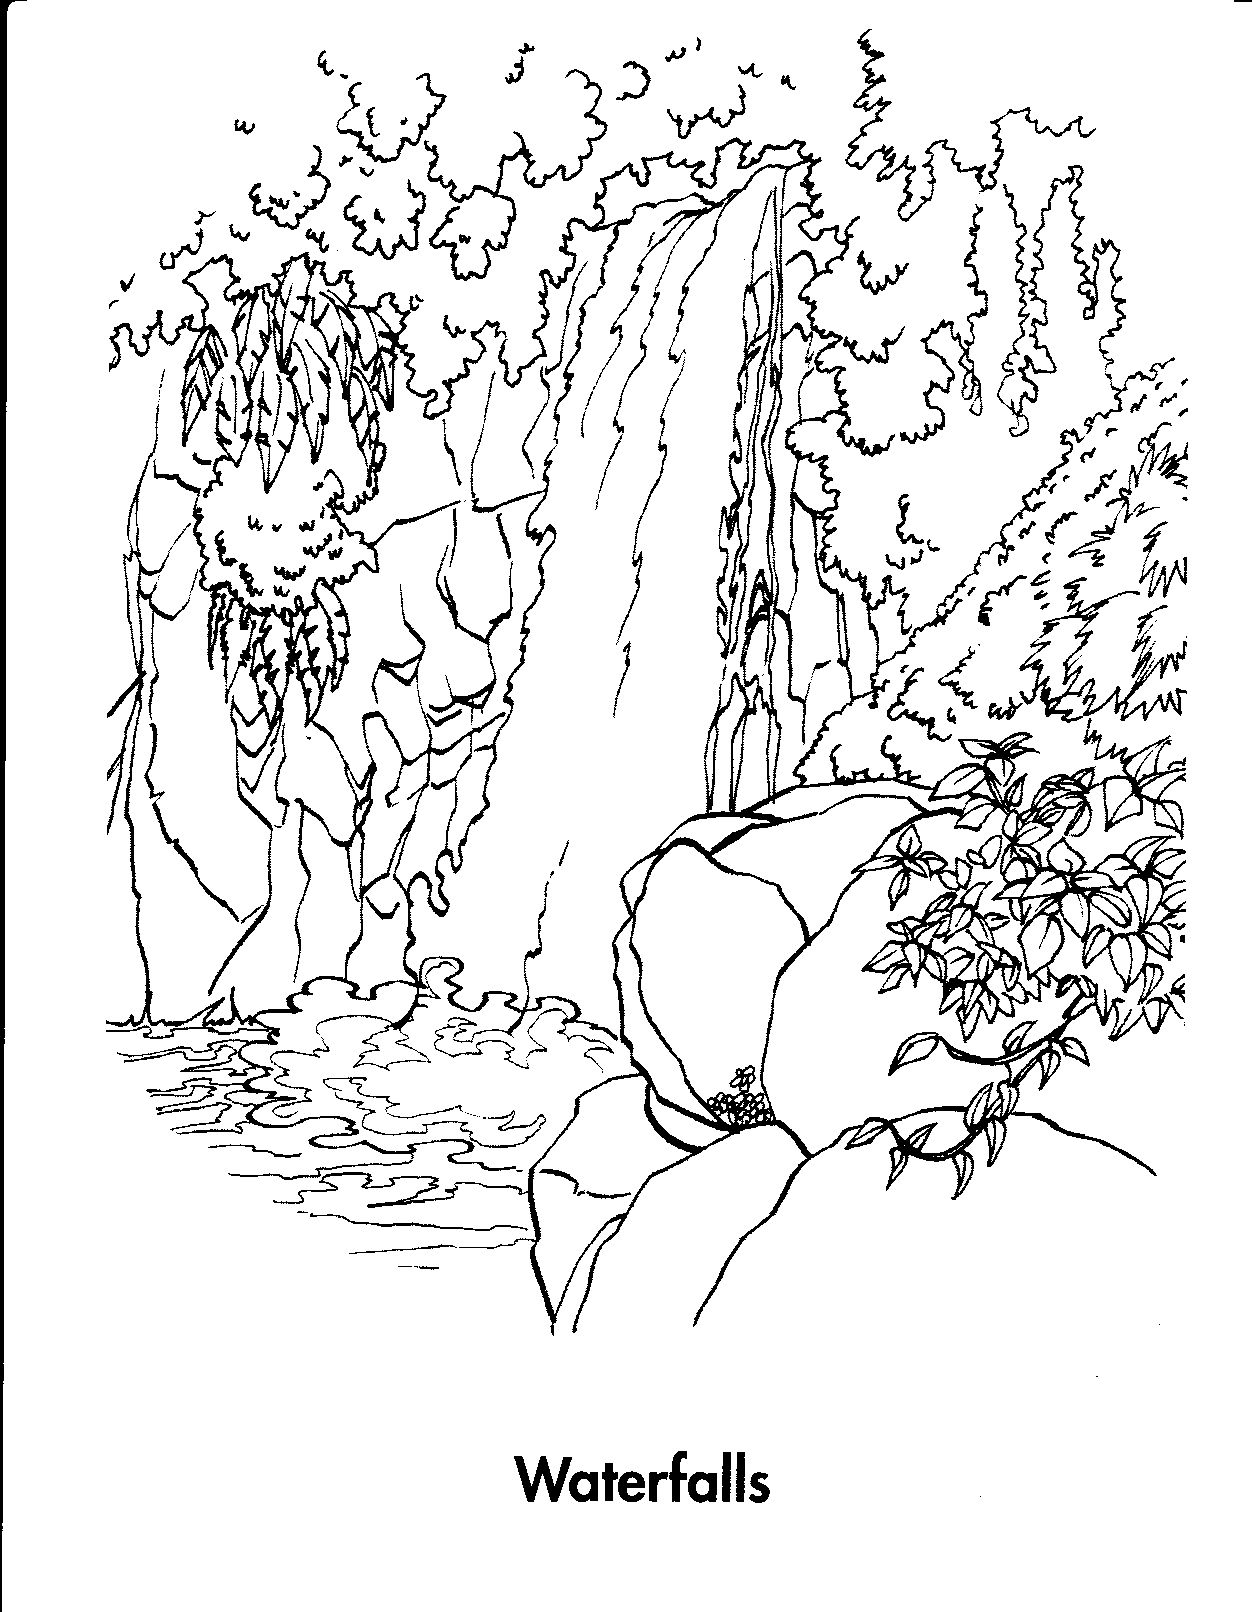 Waterfall Coloring Pages Printable | Photos | Pinterest | Coloring - Free Printable Waterfall Coloring Pages